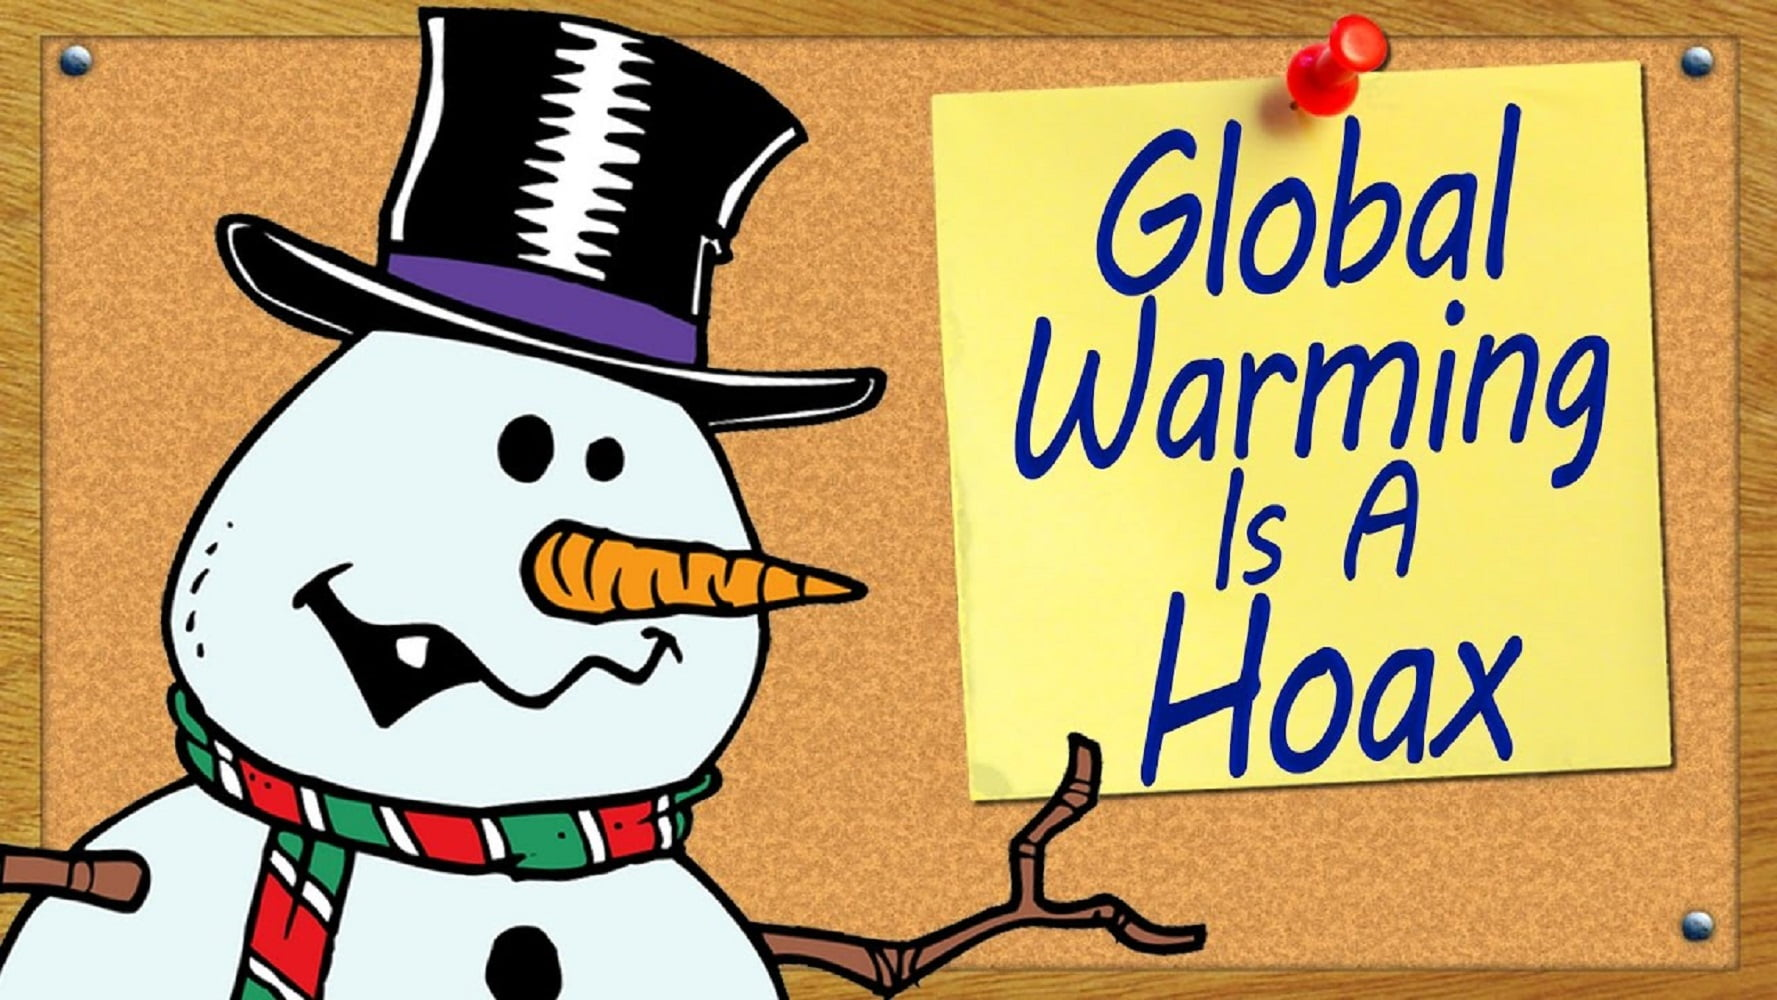 Why do sceptics believe Global Warming is a hoax?